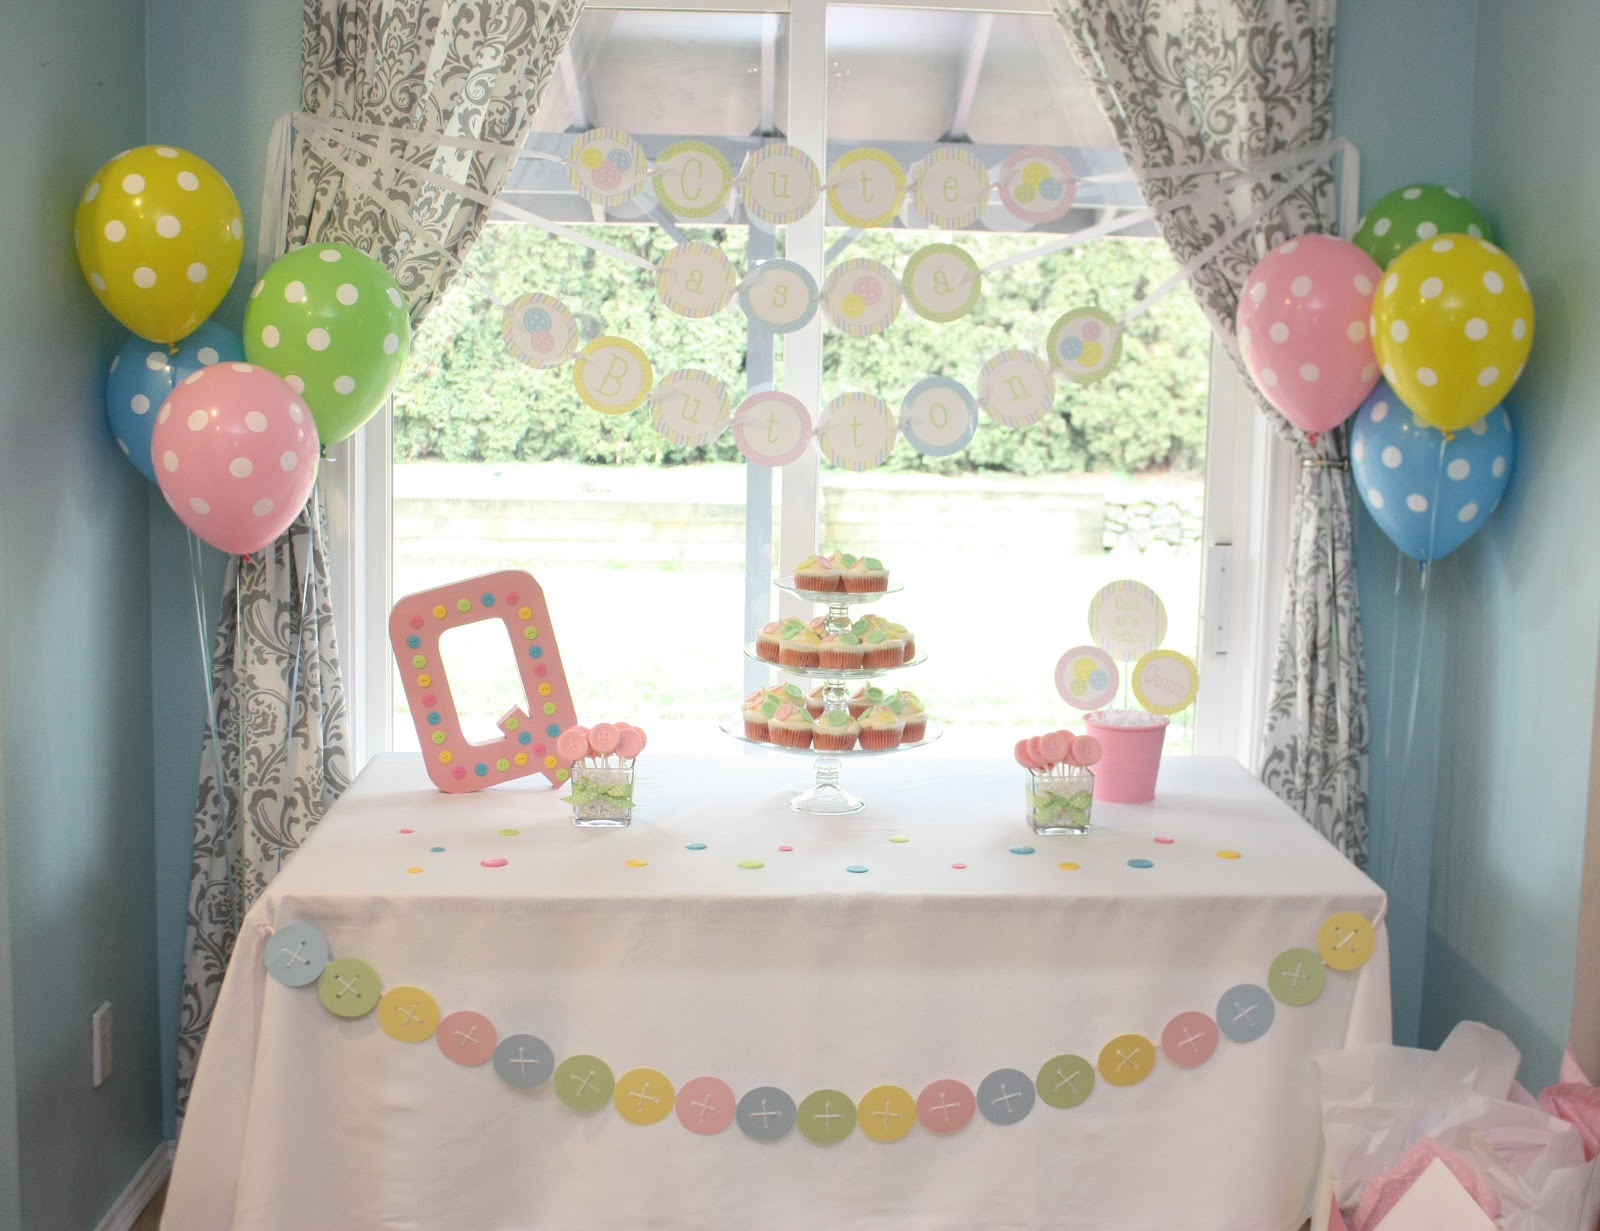 5M Creations Cute as a Button Baby Shower Birthday Party